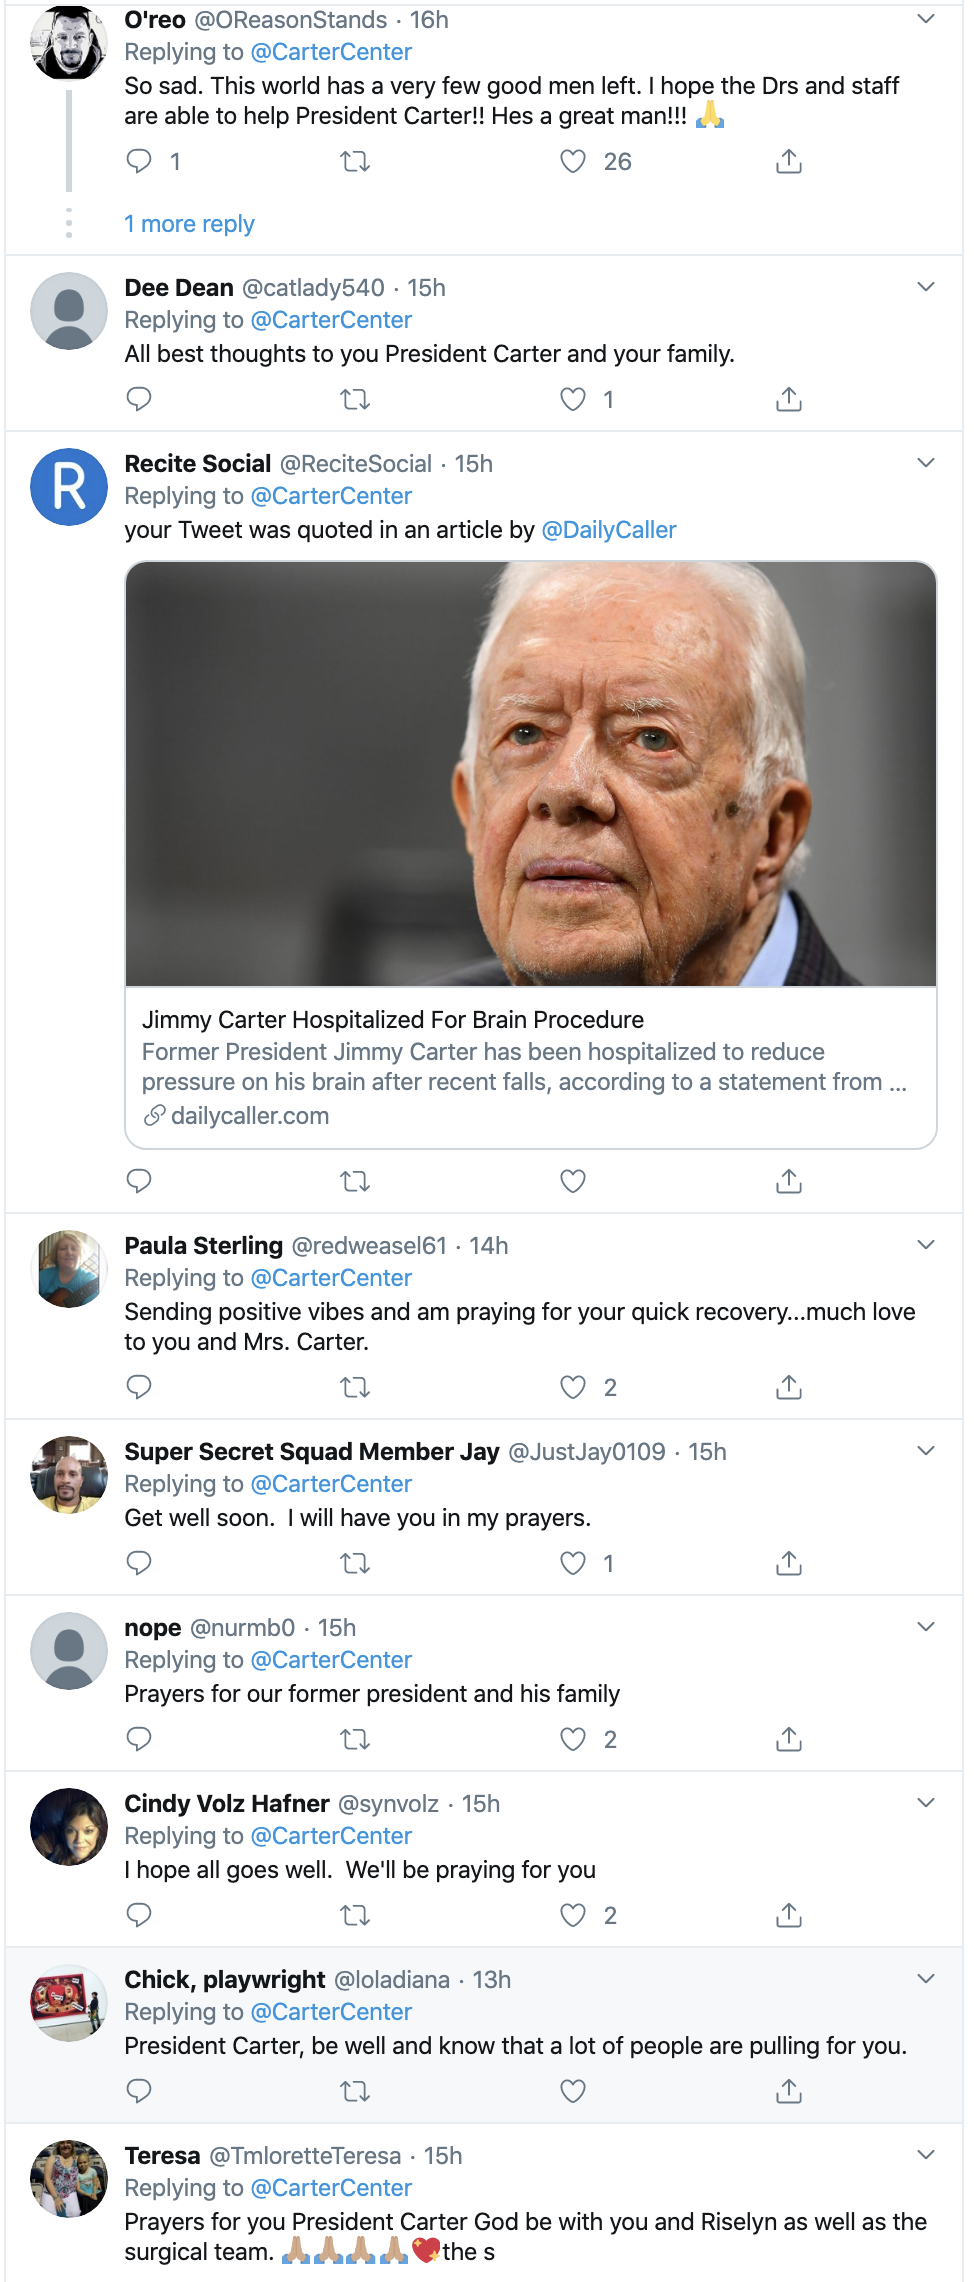 Screen-Shot-2019-11-12-at-12.21.53-PM President Jimmy Carter Hospitalized For Brain Surgery Civil Rights Corruption Crime Domestic Policy Donald Trump Election 2016 Foreign Policy History Human Rights National Security Politics Poverty Religion Top Stories